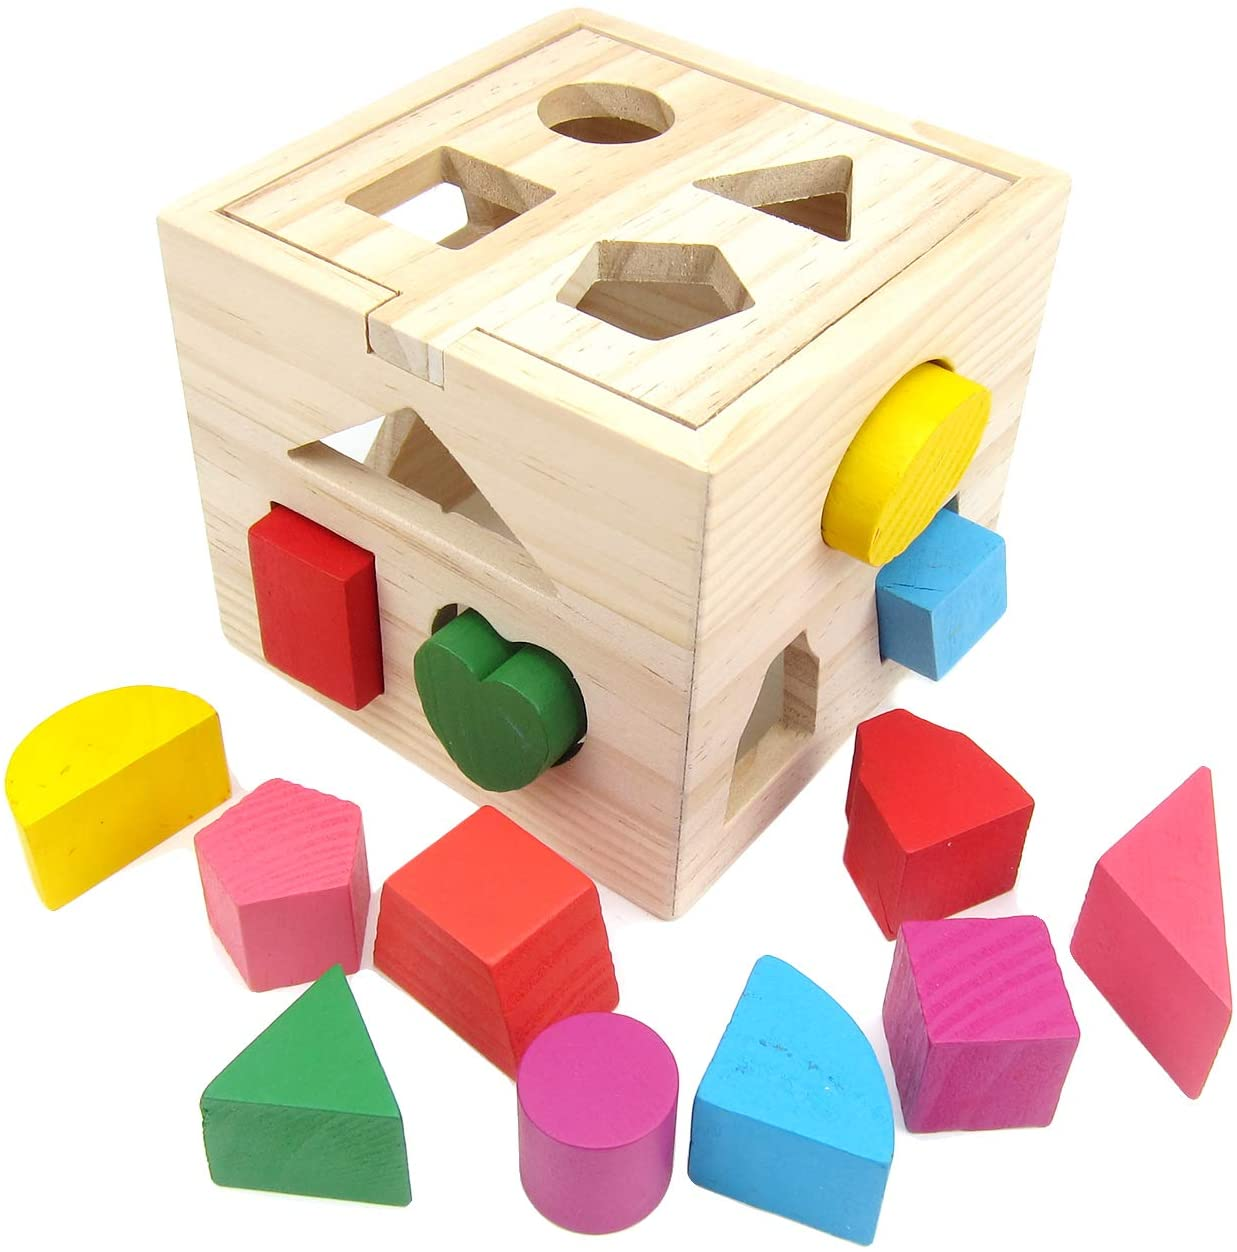 Alfie Pet - Tiny Educational Training Block Toy for Birds